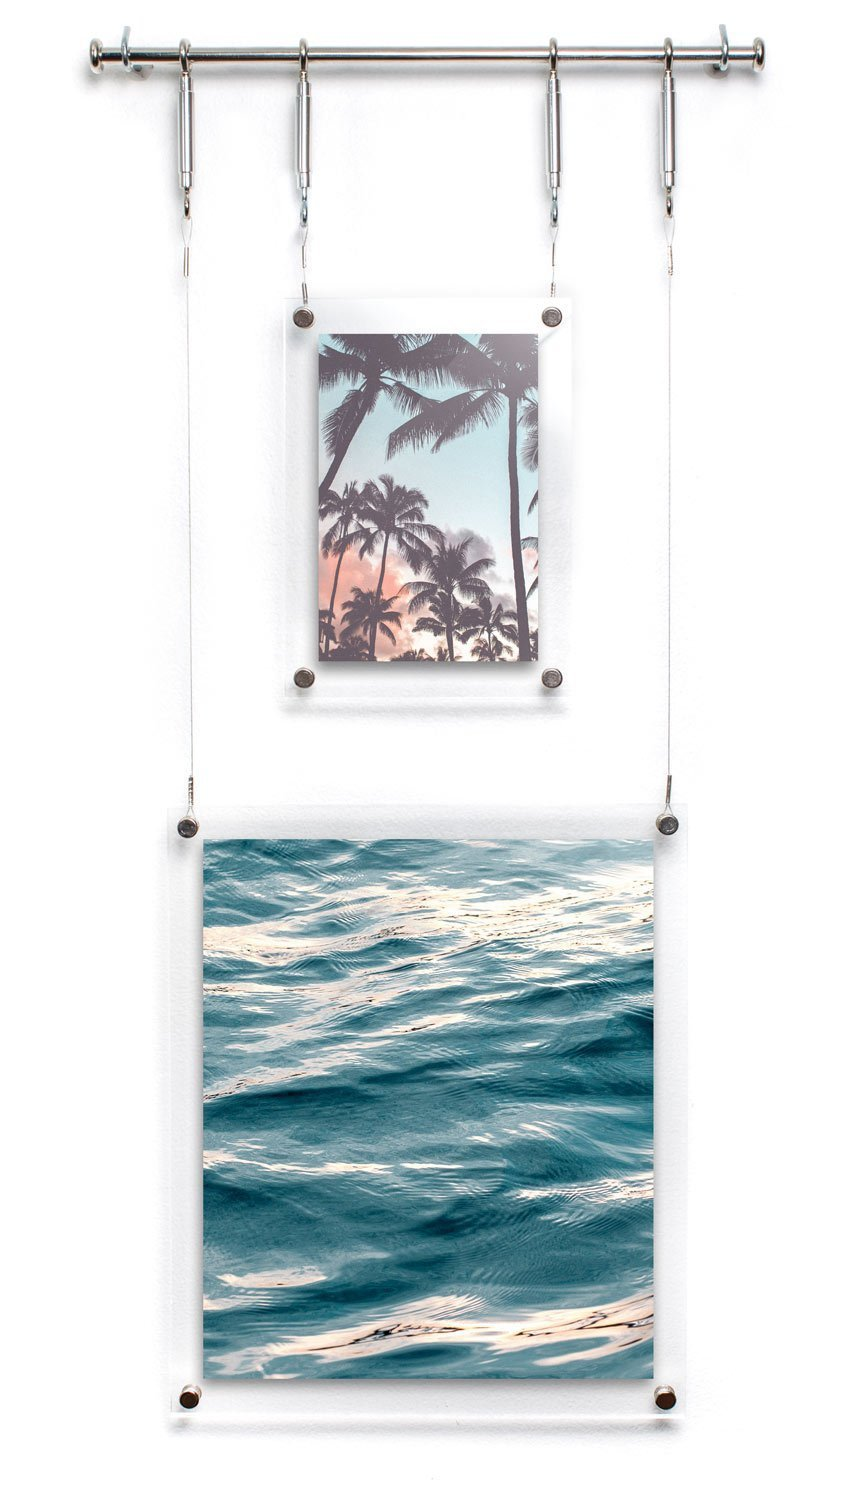 HIGHWIRE Picture Frame Display, Set of Two Hanging / Wall Mounted Photos (4x6'', 8x10''), Acrylic, Steel & Aluminum by HIGHWIRE